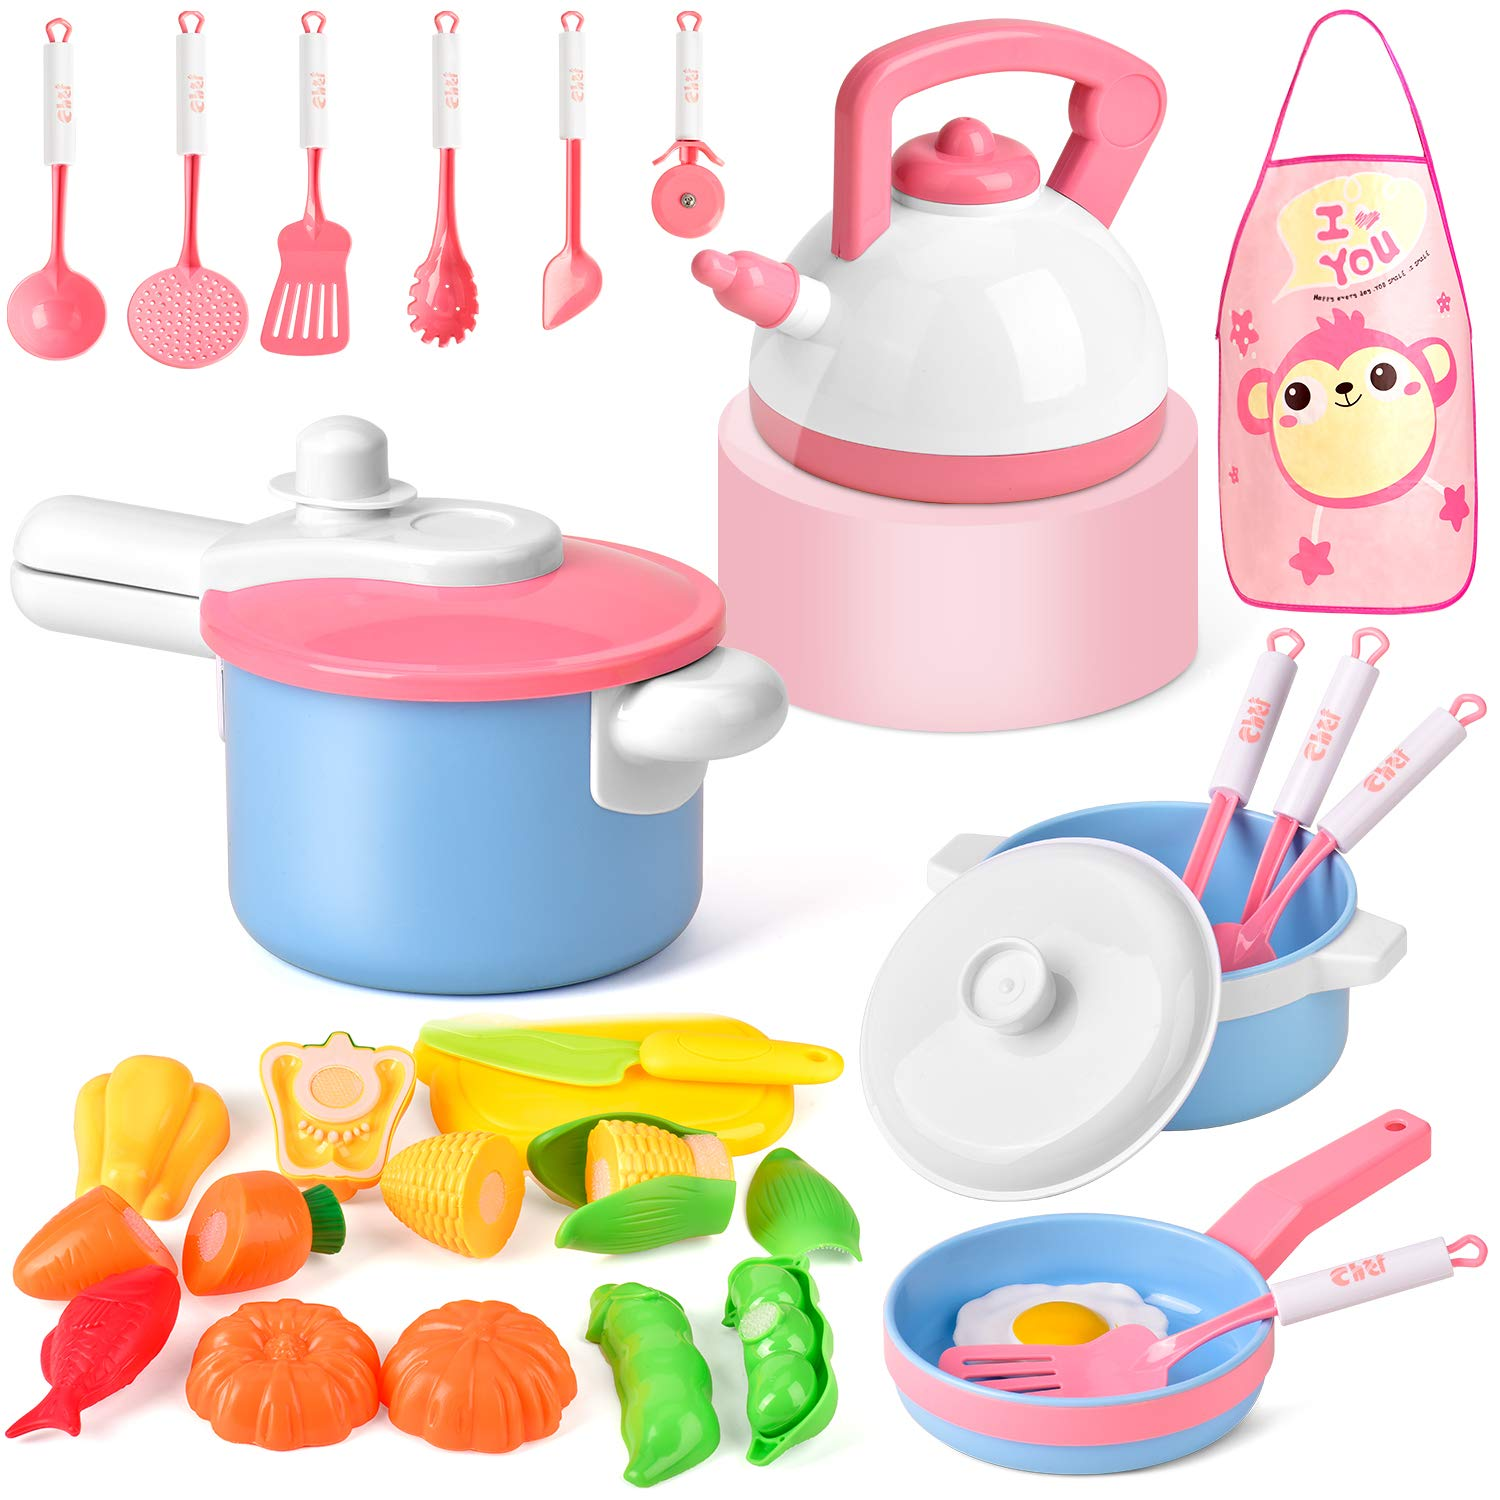 Balnore Kids Kitchen Pretend Play Toys, 28 Pcs Macaron Toy Kitchen Sets with Cooking Set Cookware Playset Pots and Pans Healthy Cutting Vegetables,Knife,Utensils, Little Chef for Kids Toddlers